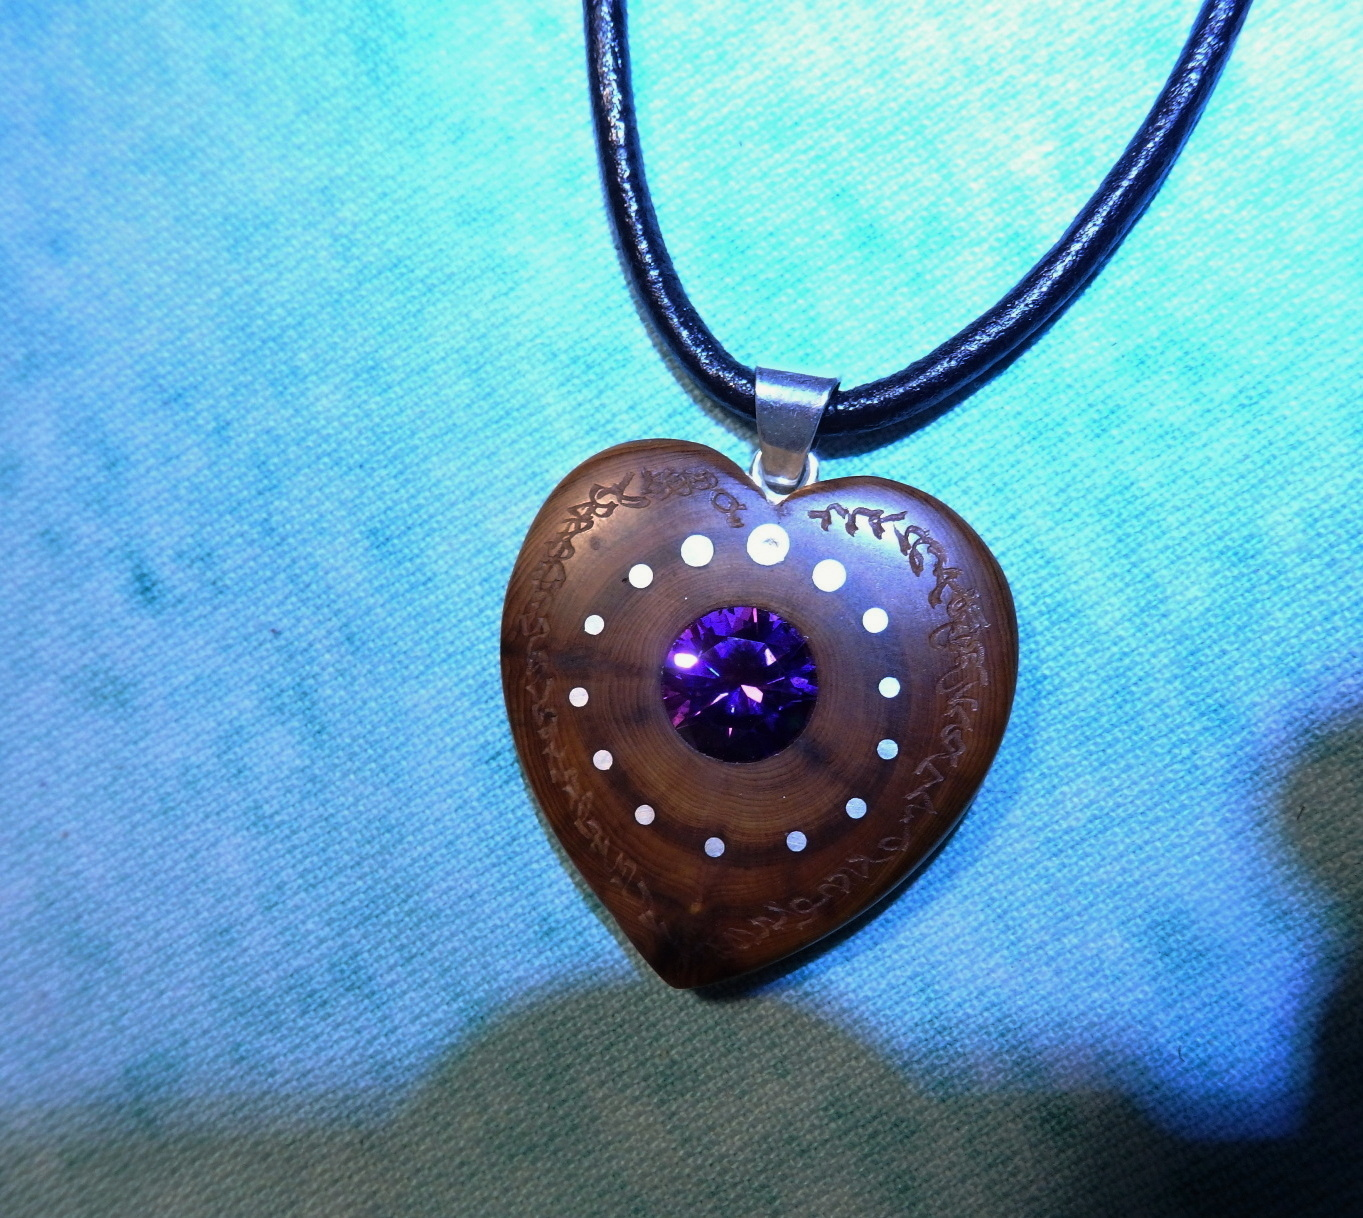 Wooden necklace NH-456 HEART - JUNIPER - ZIRCON